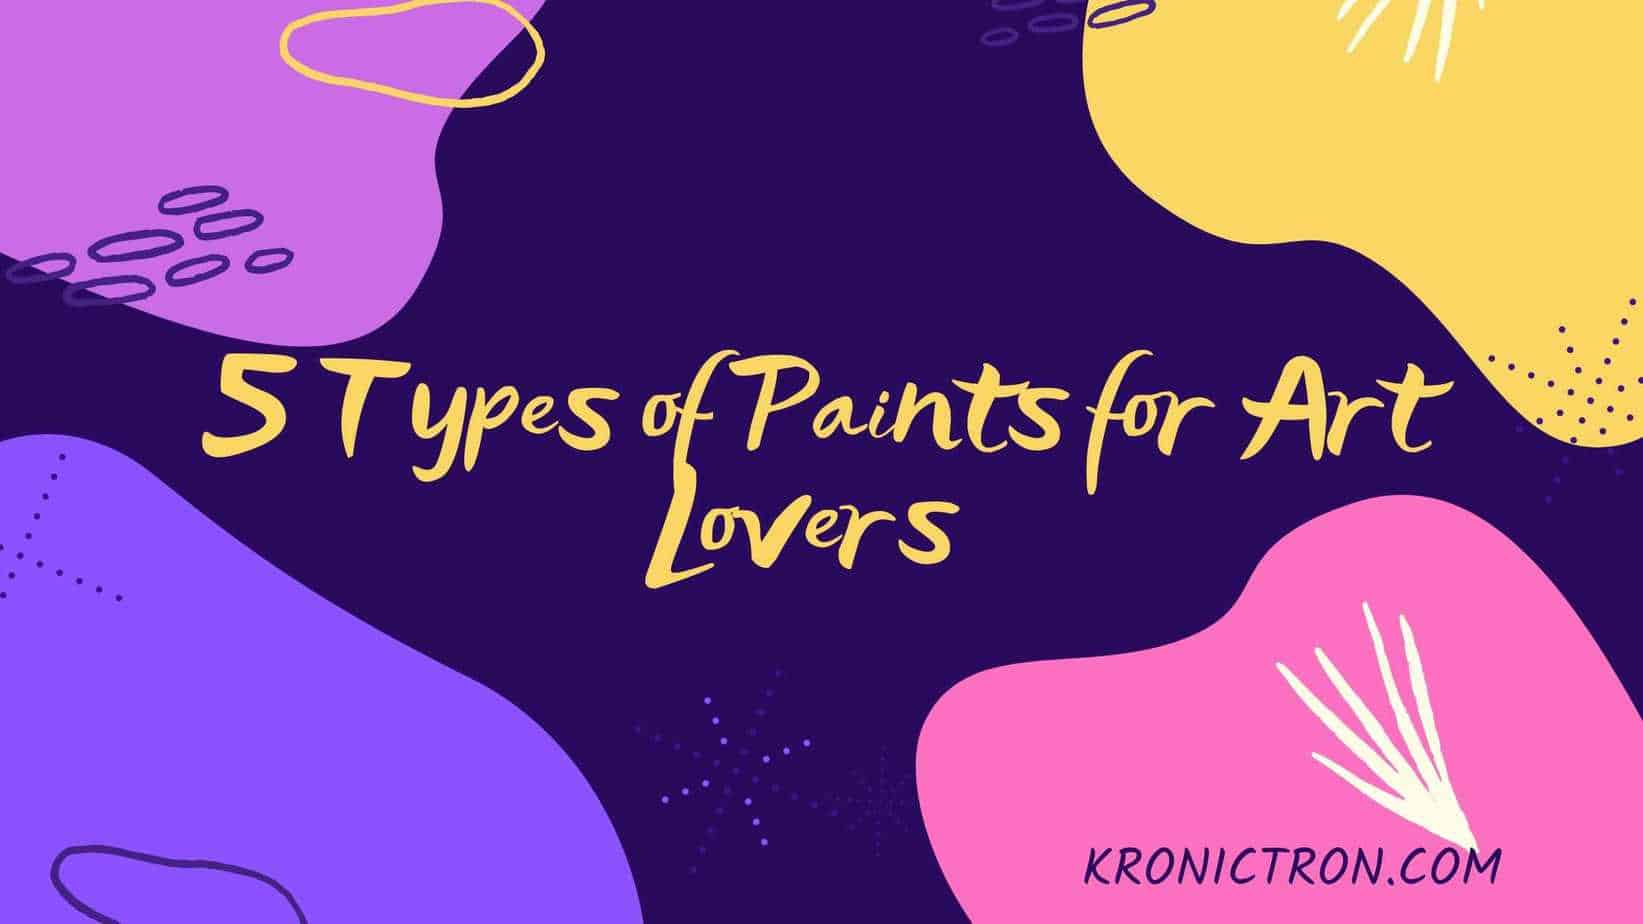 5 Types of Paints for Art Lovers